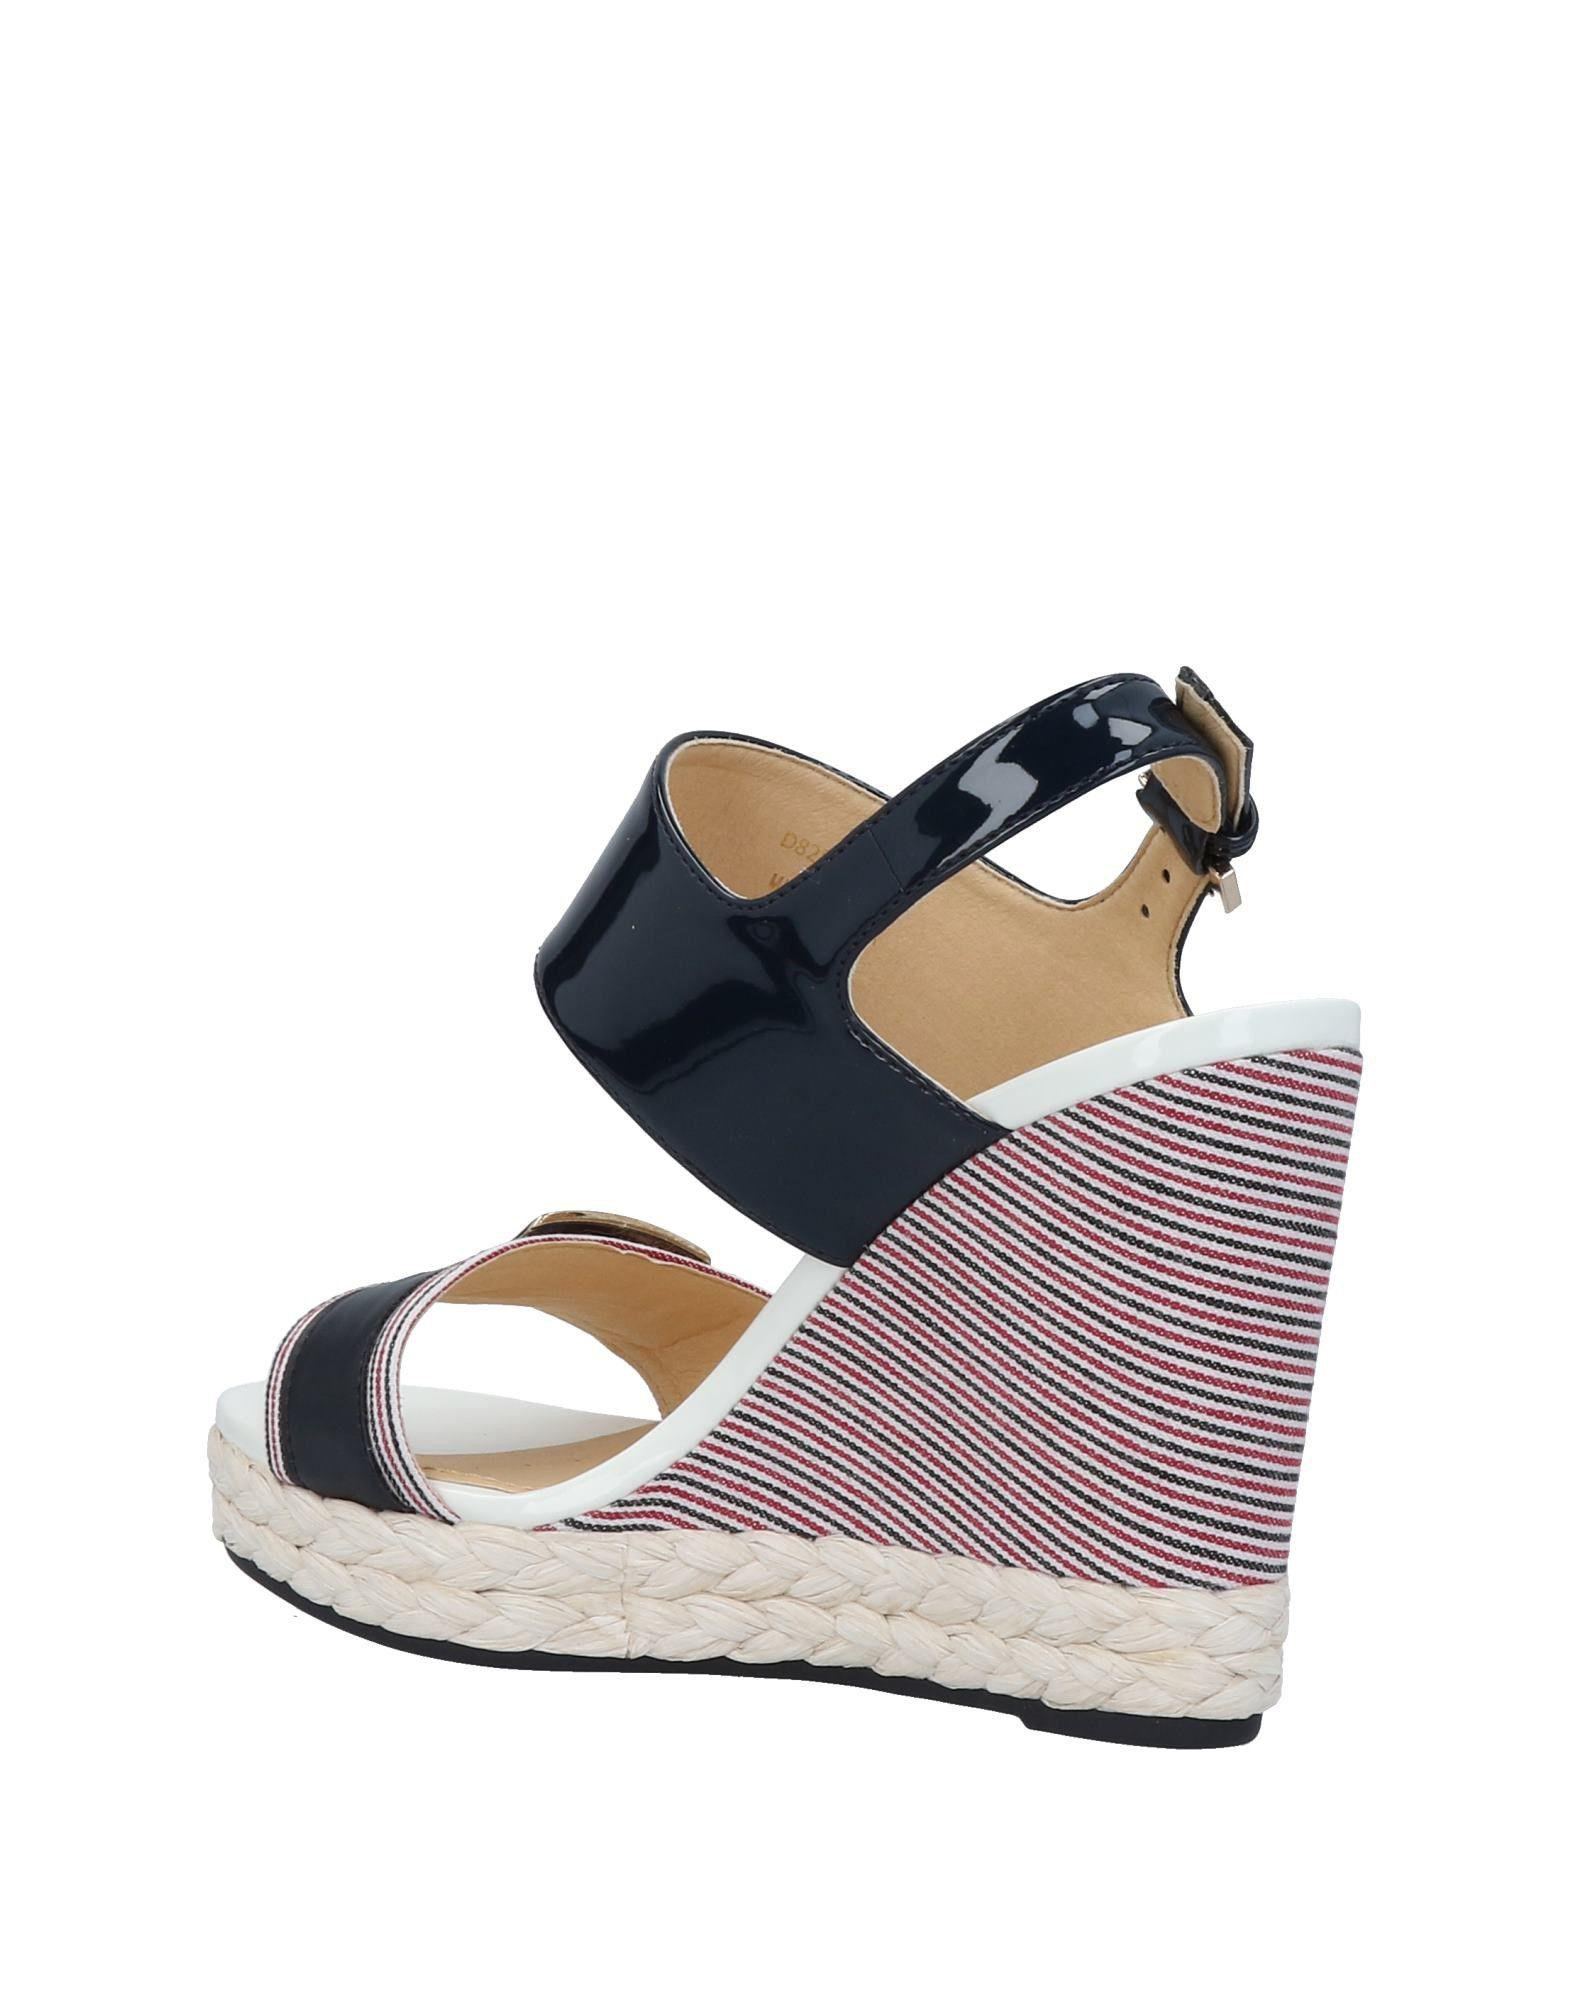 e5b81dcb1c0 Geox Sandals in Blue - Save 53% - Lyst